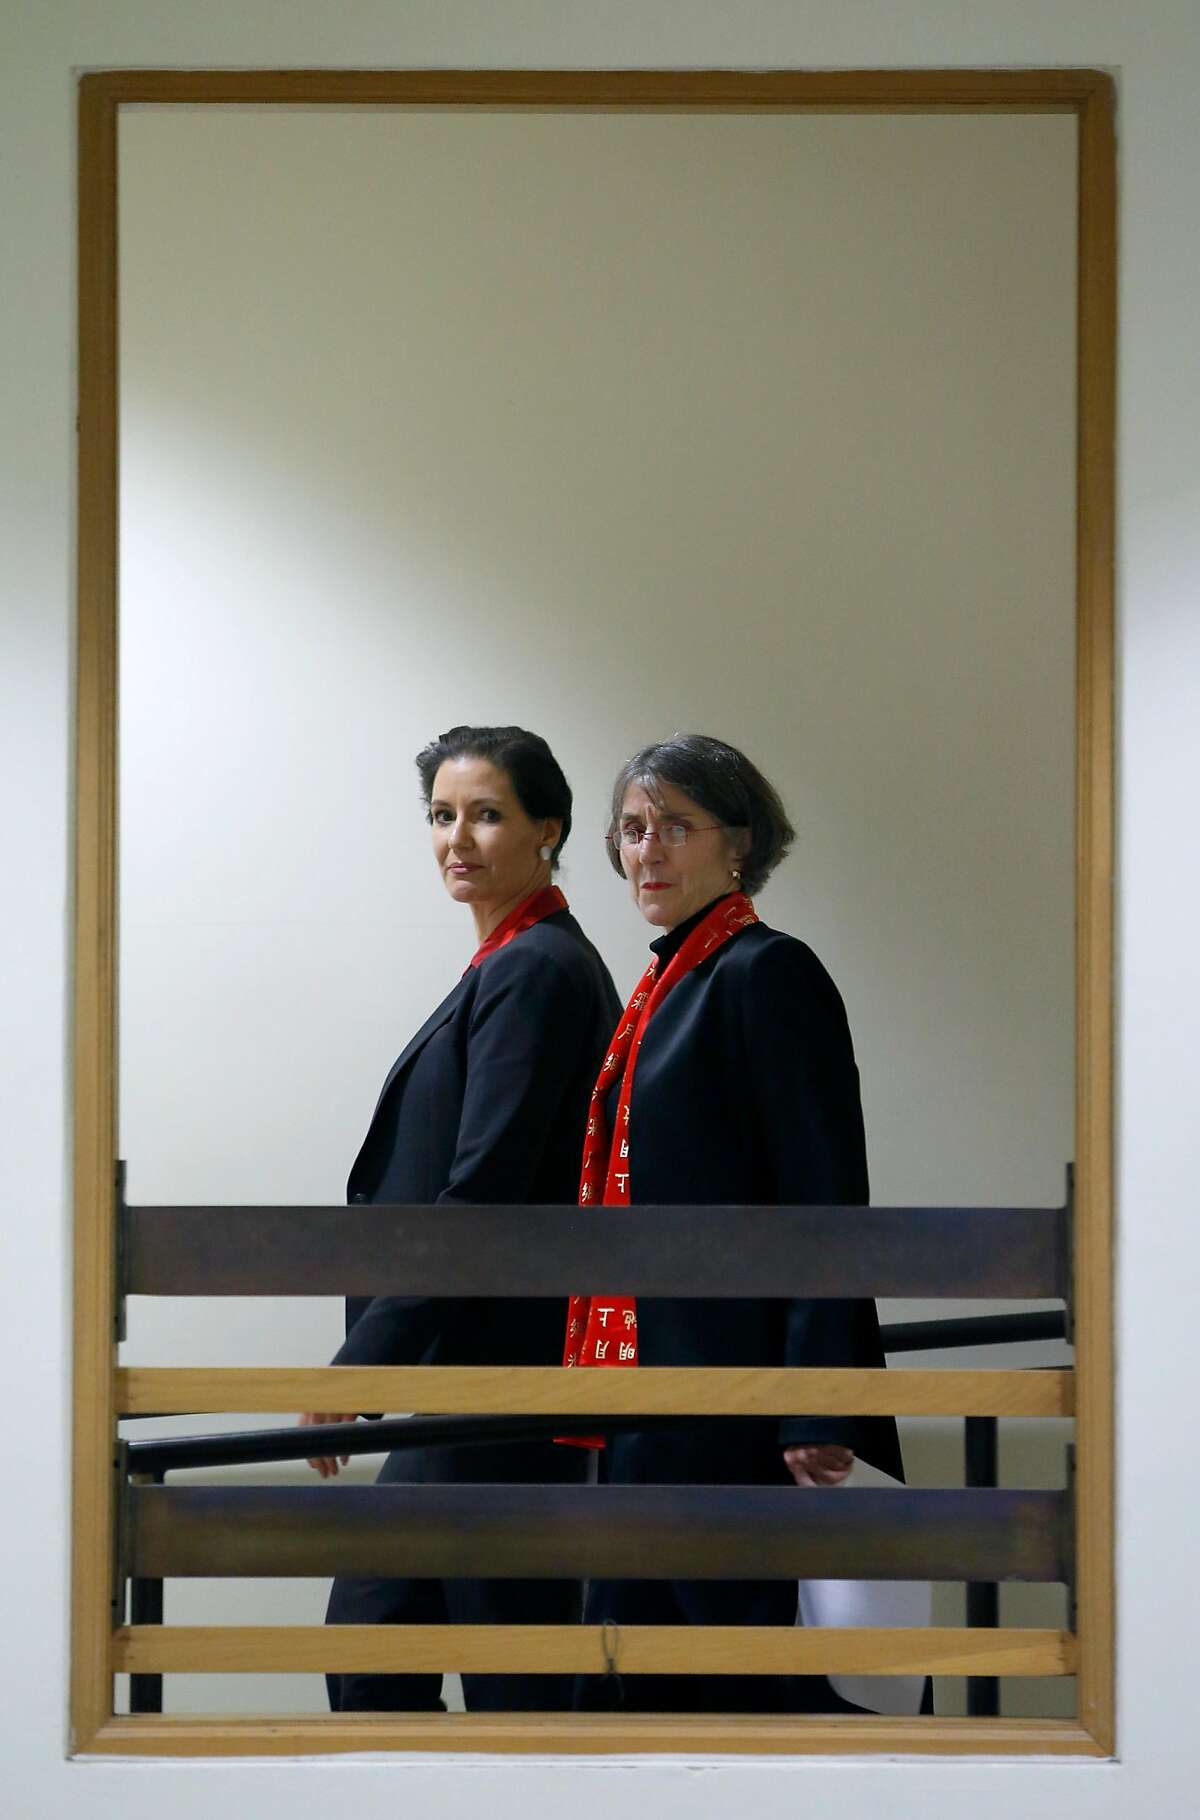 Mayor Libby Schaaf walks through City Hall with Anne Kirkpatrick to a news conference where the mayor will announce Kirkpatrick as the new chief of police in Oakland, Calif. on Wednesday, Jan. 4, 2017.